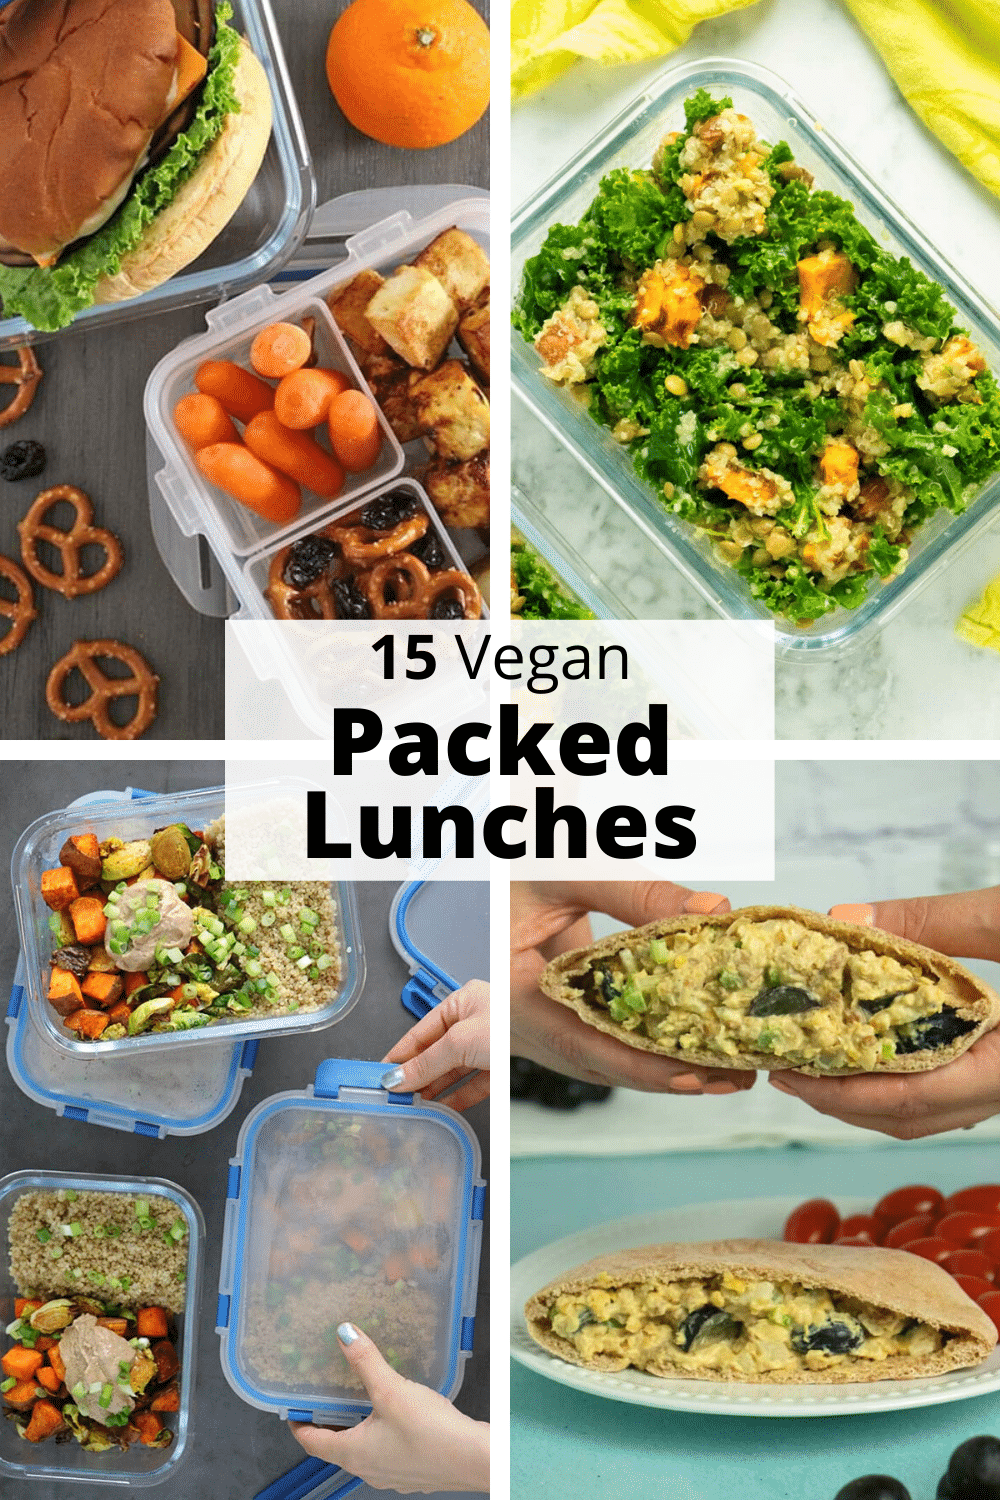 image collage of vegan packed lunches: sandwich, quinoa salad, kale salad, chickpea sandwich, text overlay